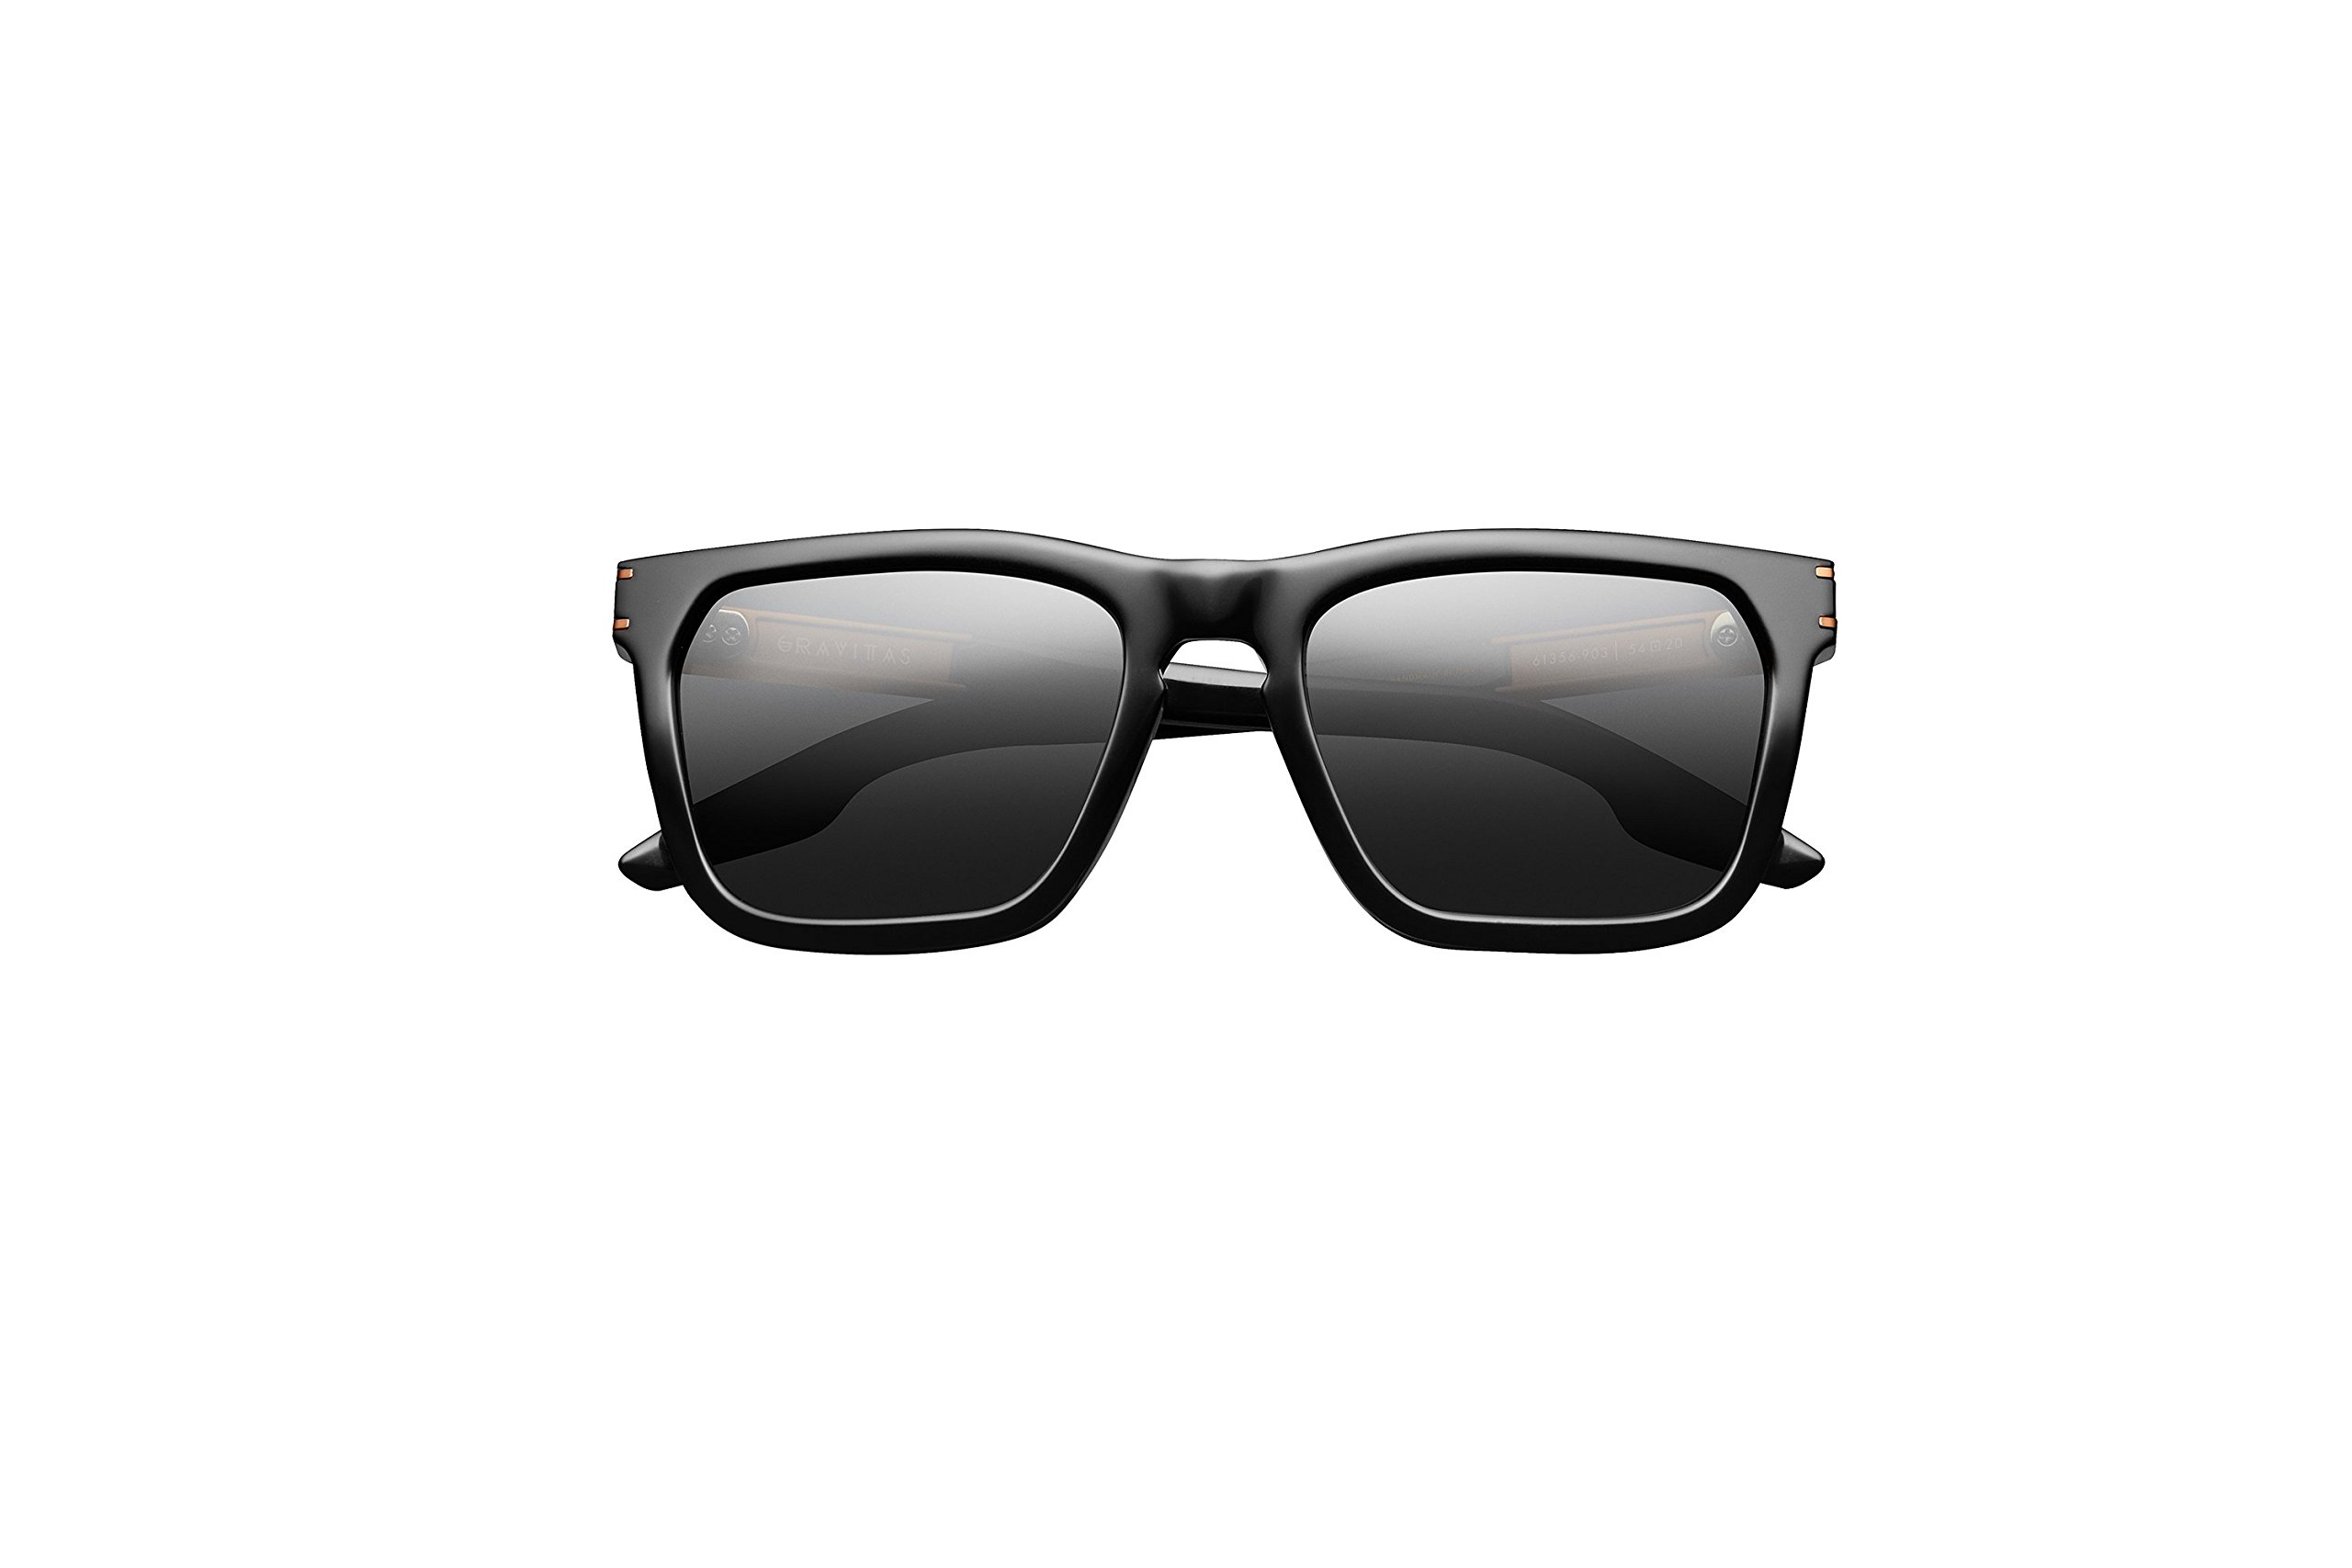 IVI Eyewear Gravitas Polished Black And Copper with GREY AR framed Sunglasses